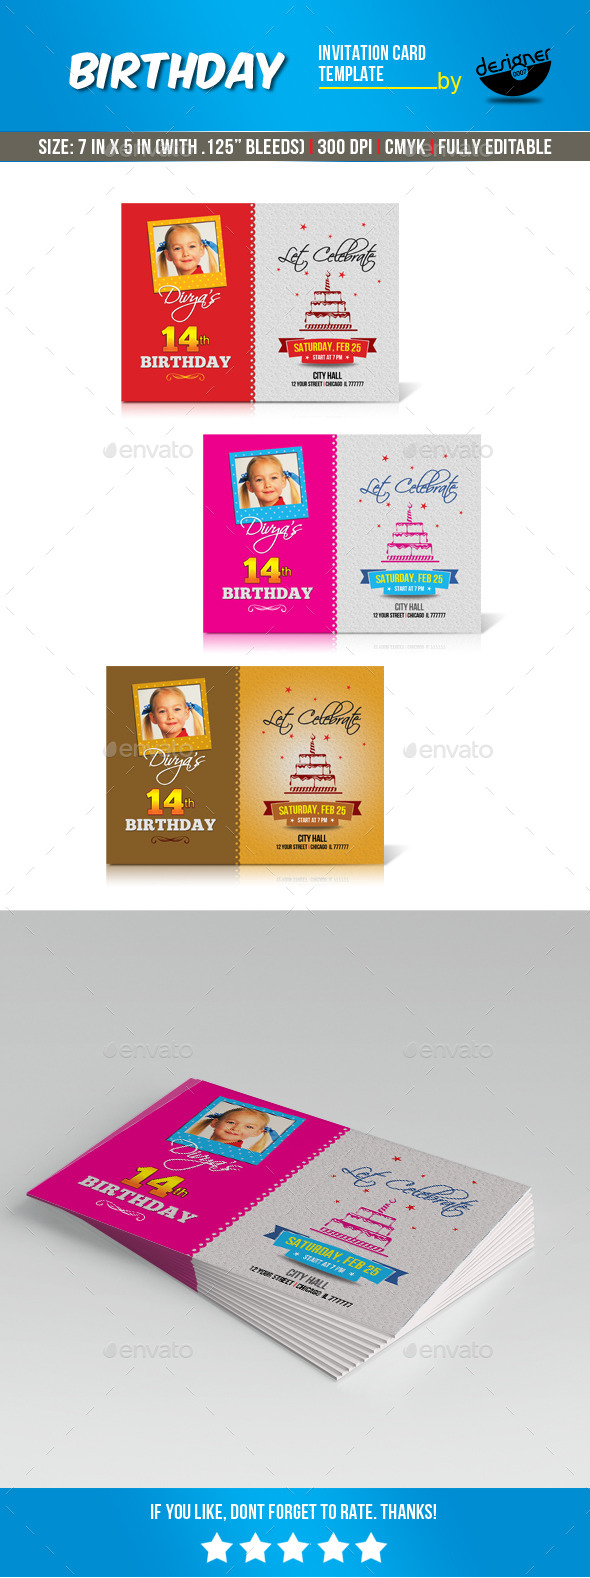 GraphicRiver Birthday Invitation Card Template 10509659